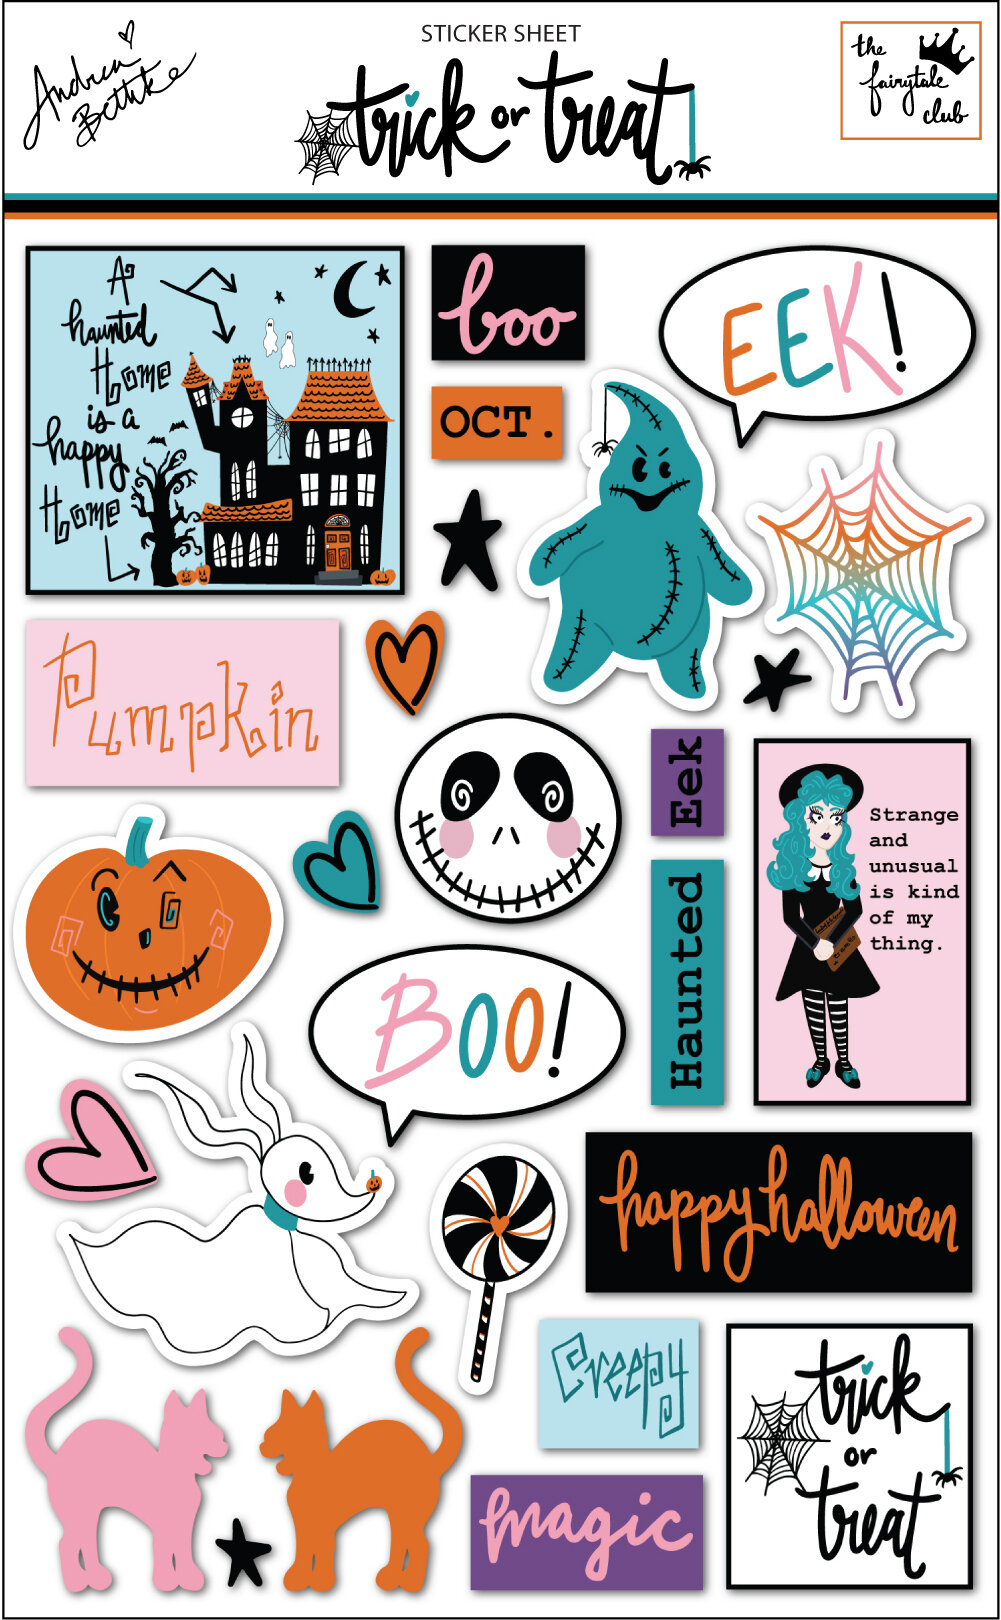 Trick or Treat - Stickers with top piece-07.jpg